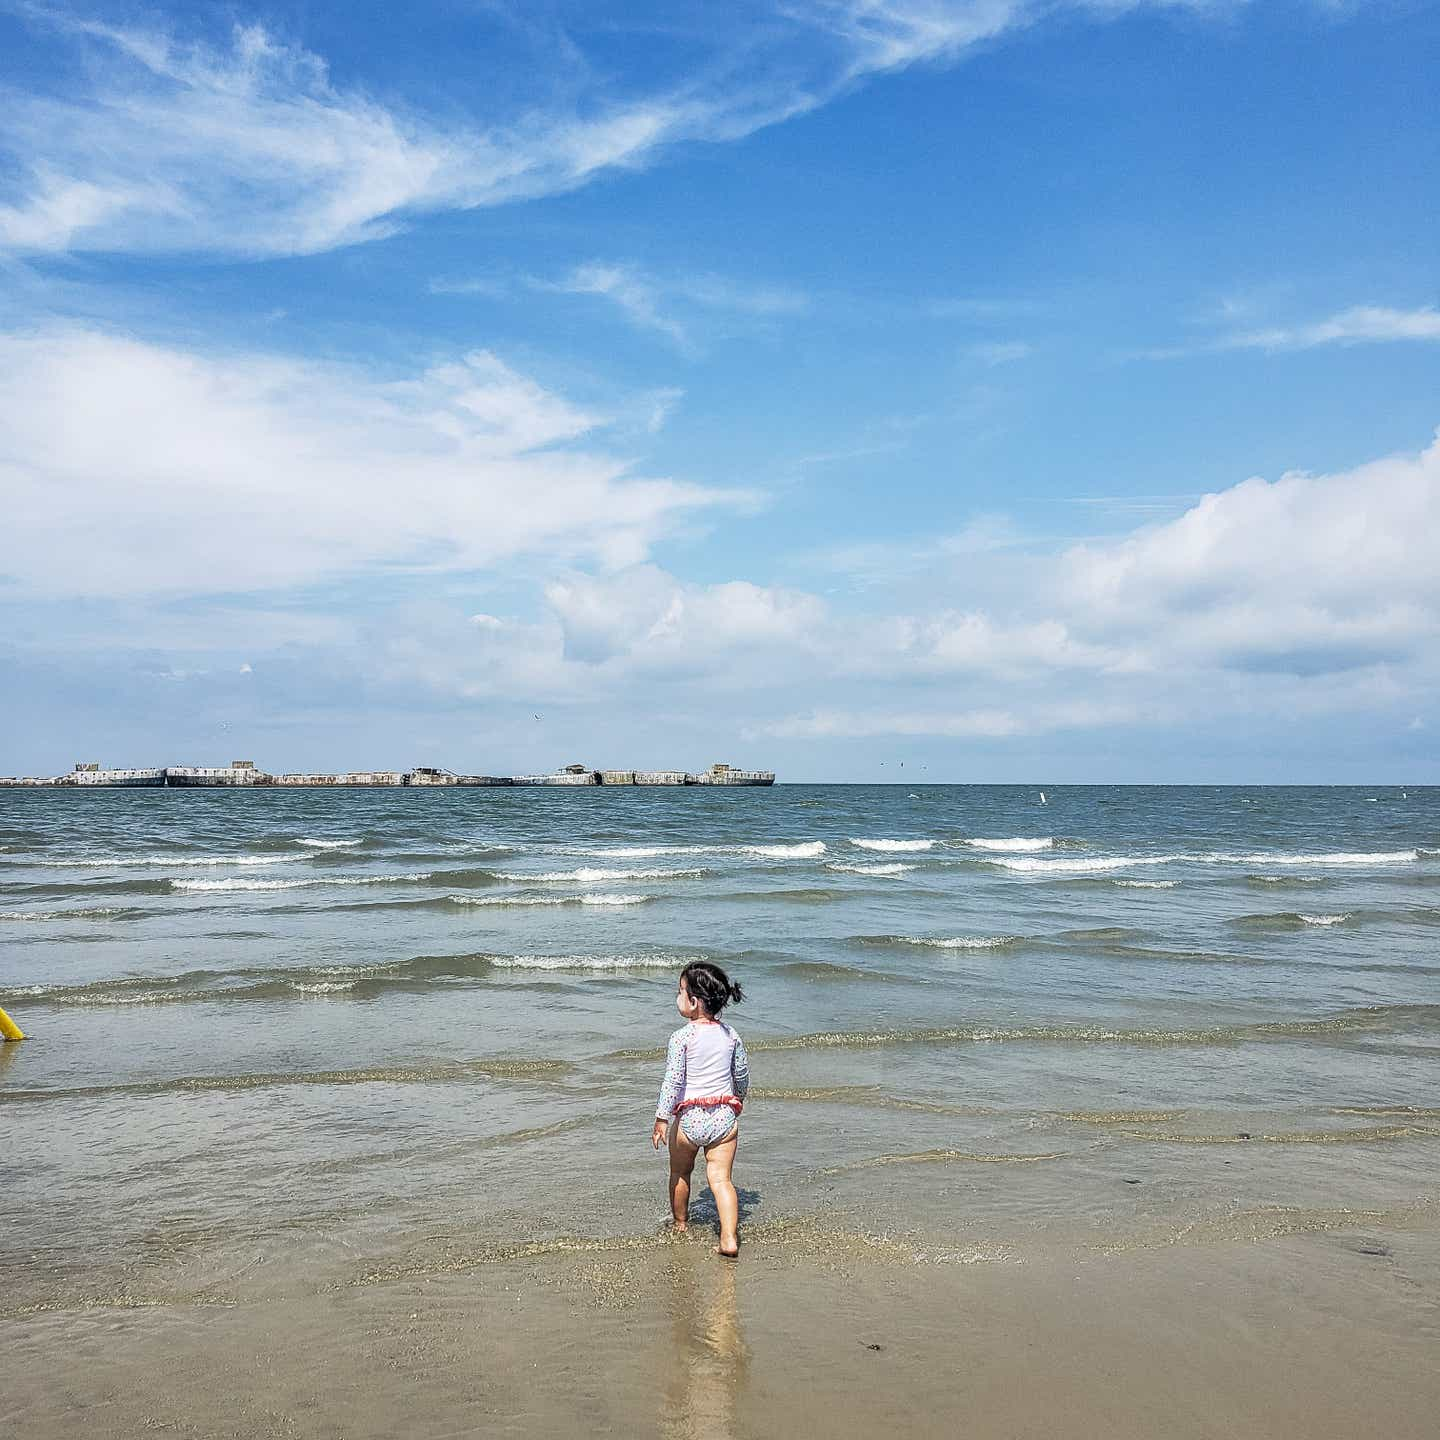 Angelica's daughter walking on the beach toward the waves, looking at the concrete fleet.